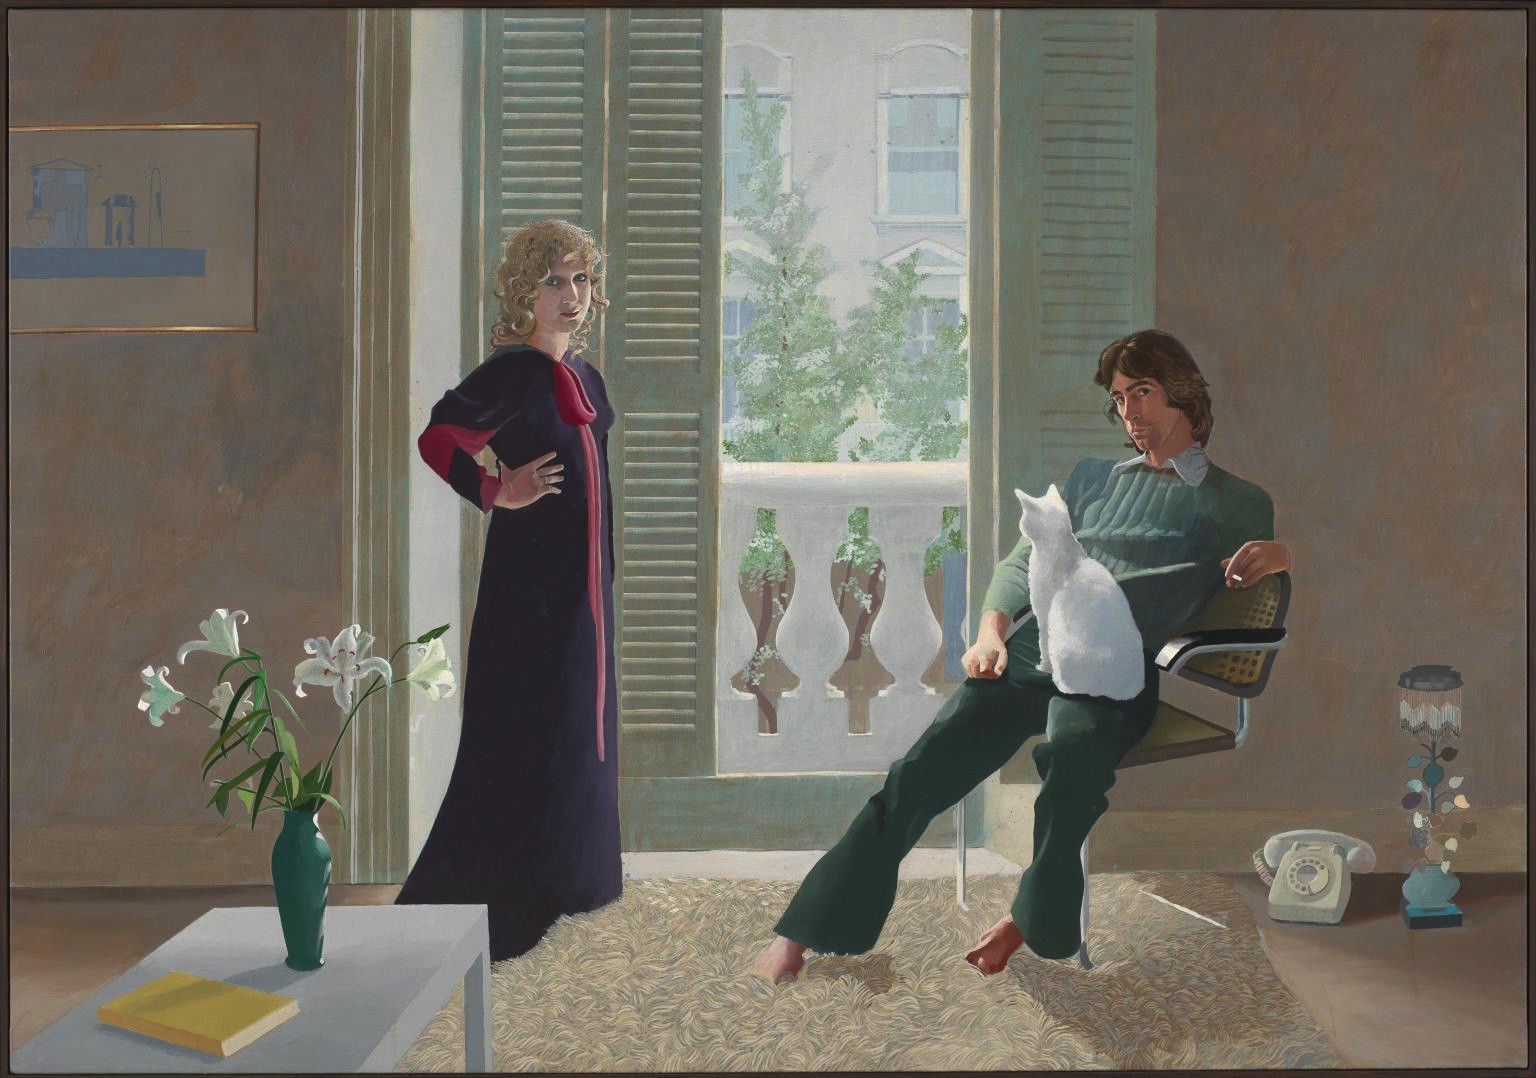 David Hockney, Mr and Mrs Clark and Percy, 1970-1971